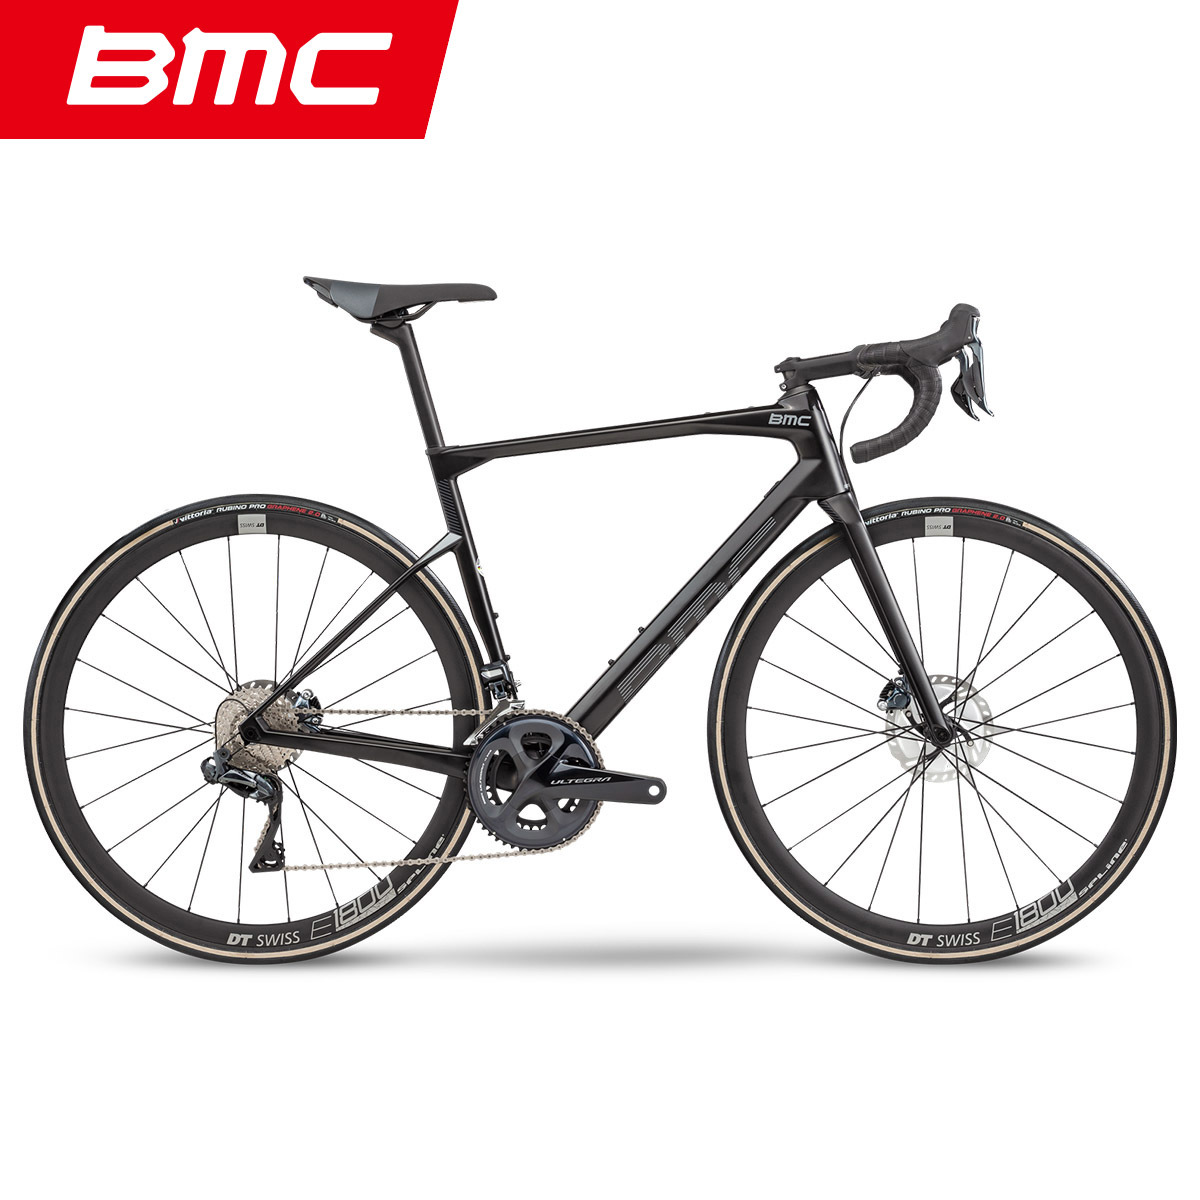 roadmachine-02-one-bmc-logo.jpg